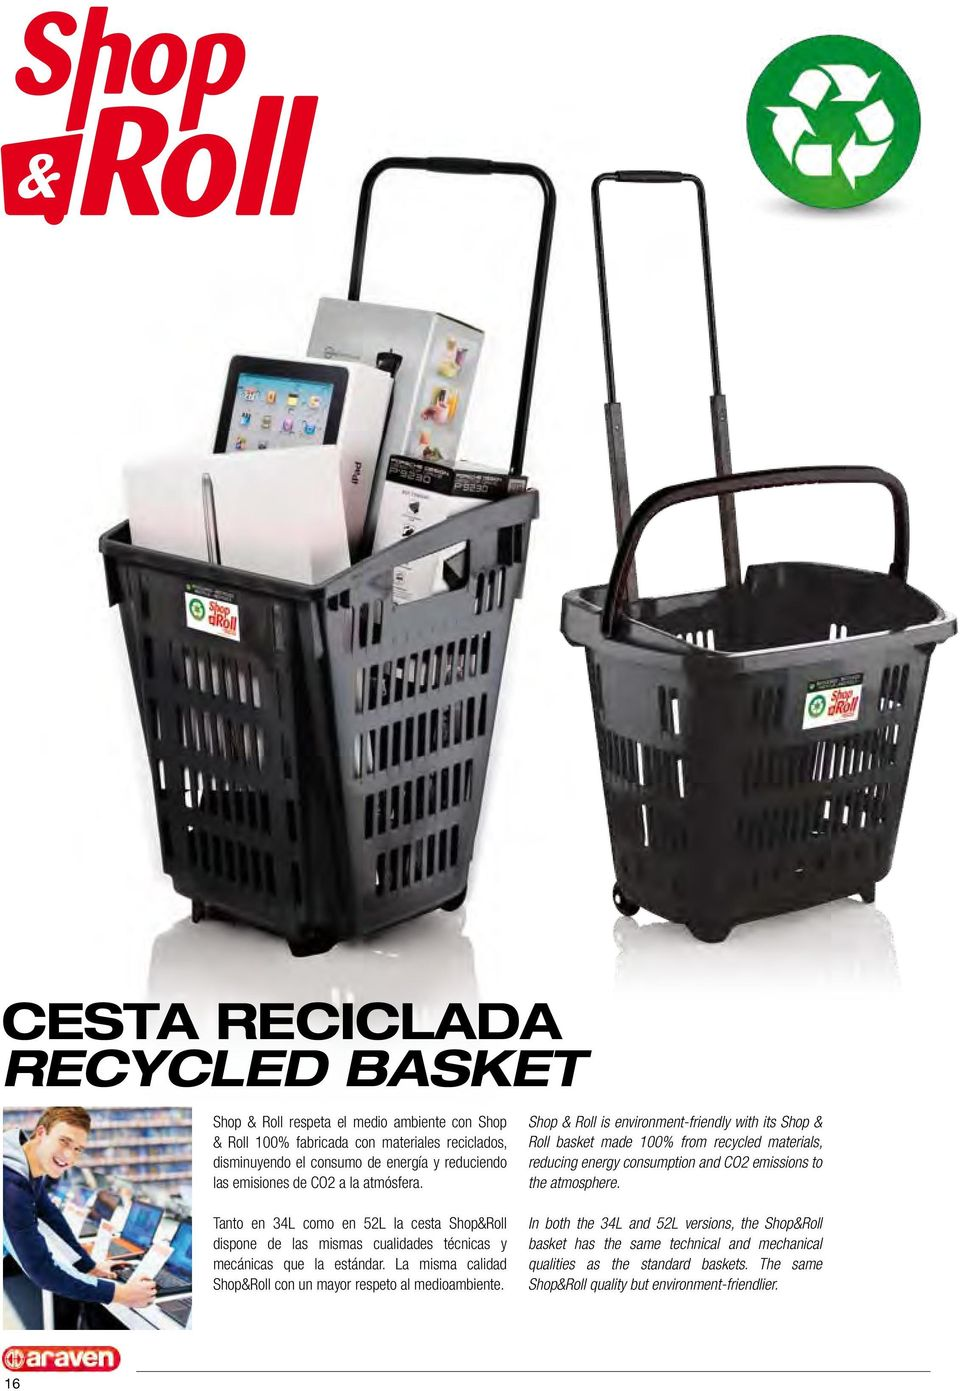 Shop & Roll is environment-friendly with its Shop & Roll basket made 100% from recycled materials, reducing energy consumption and CO2 emissions to the atmosphere.